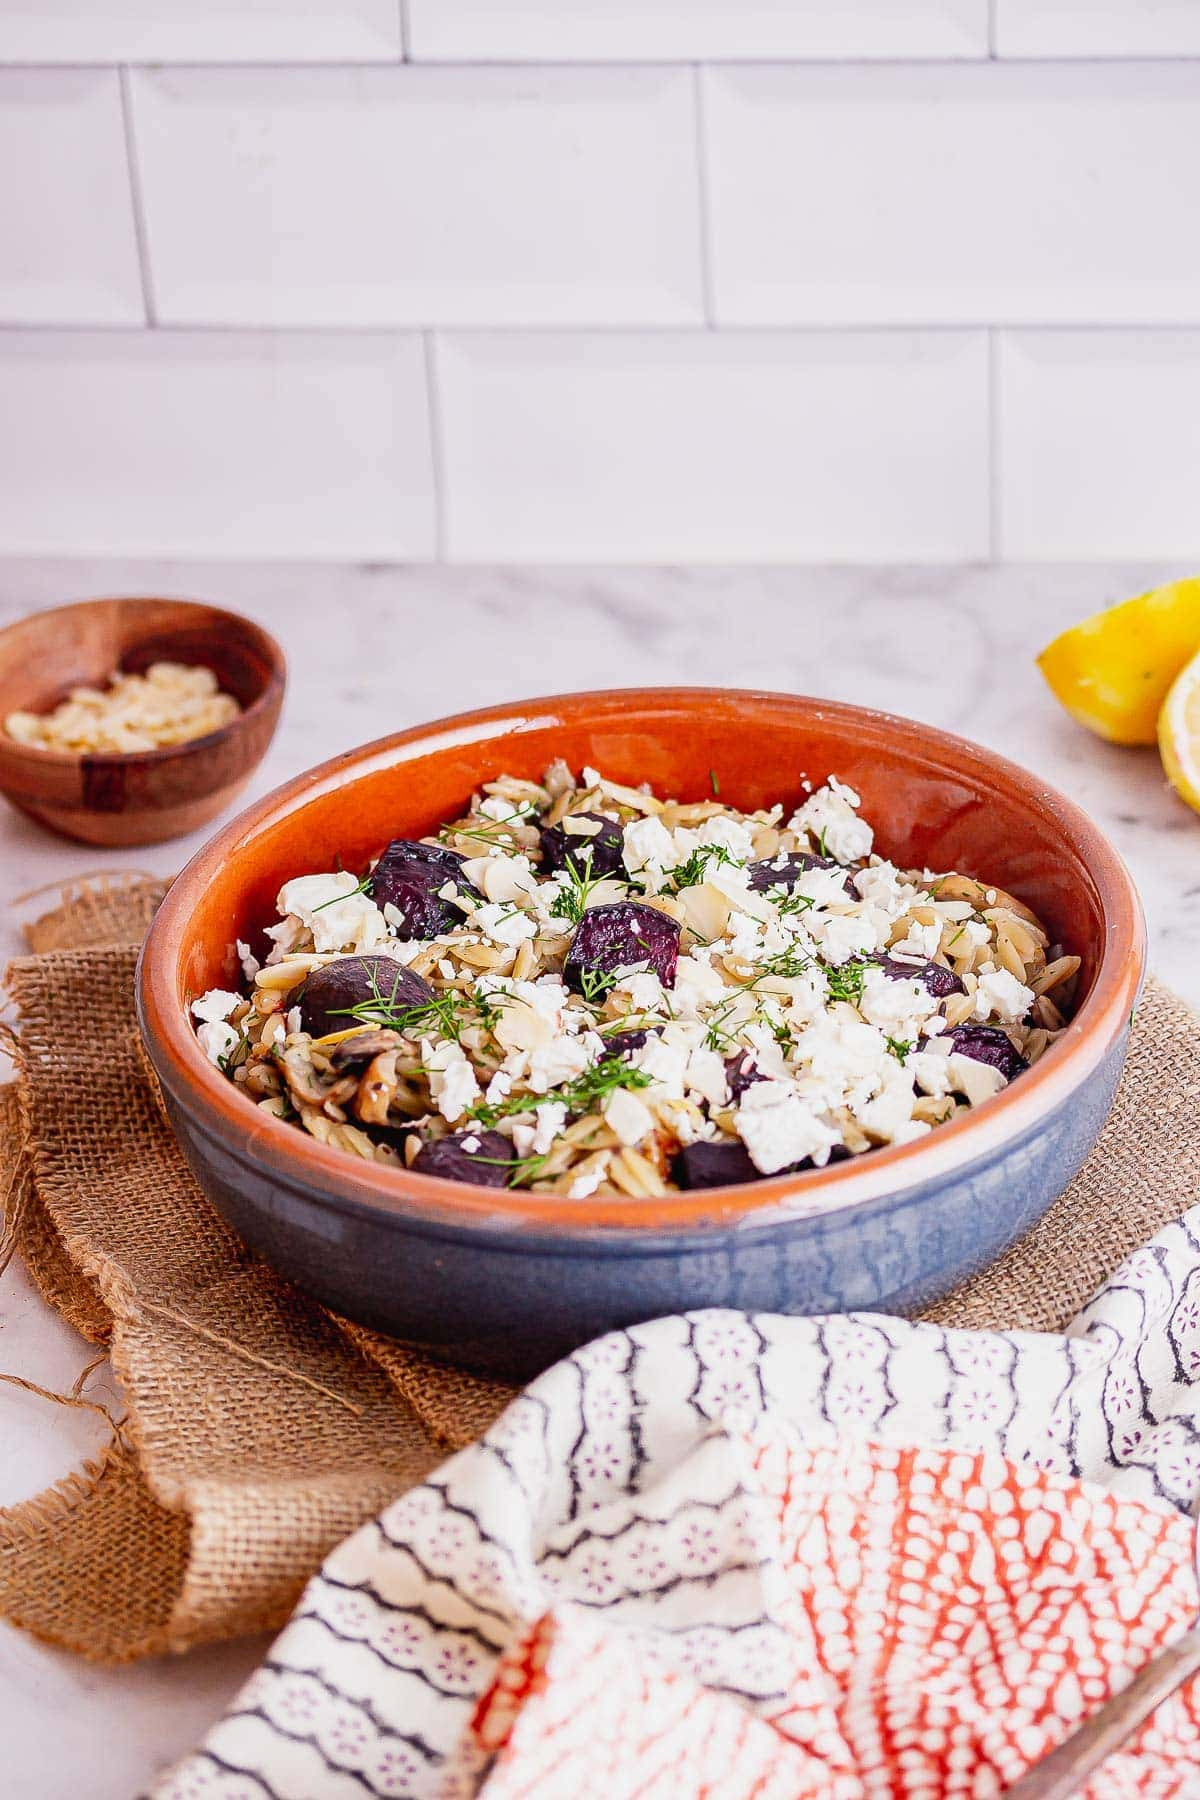 Blue bowl of mushroom orzo with a patterned towel